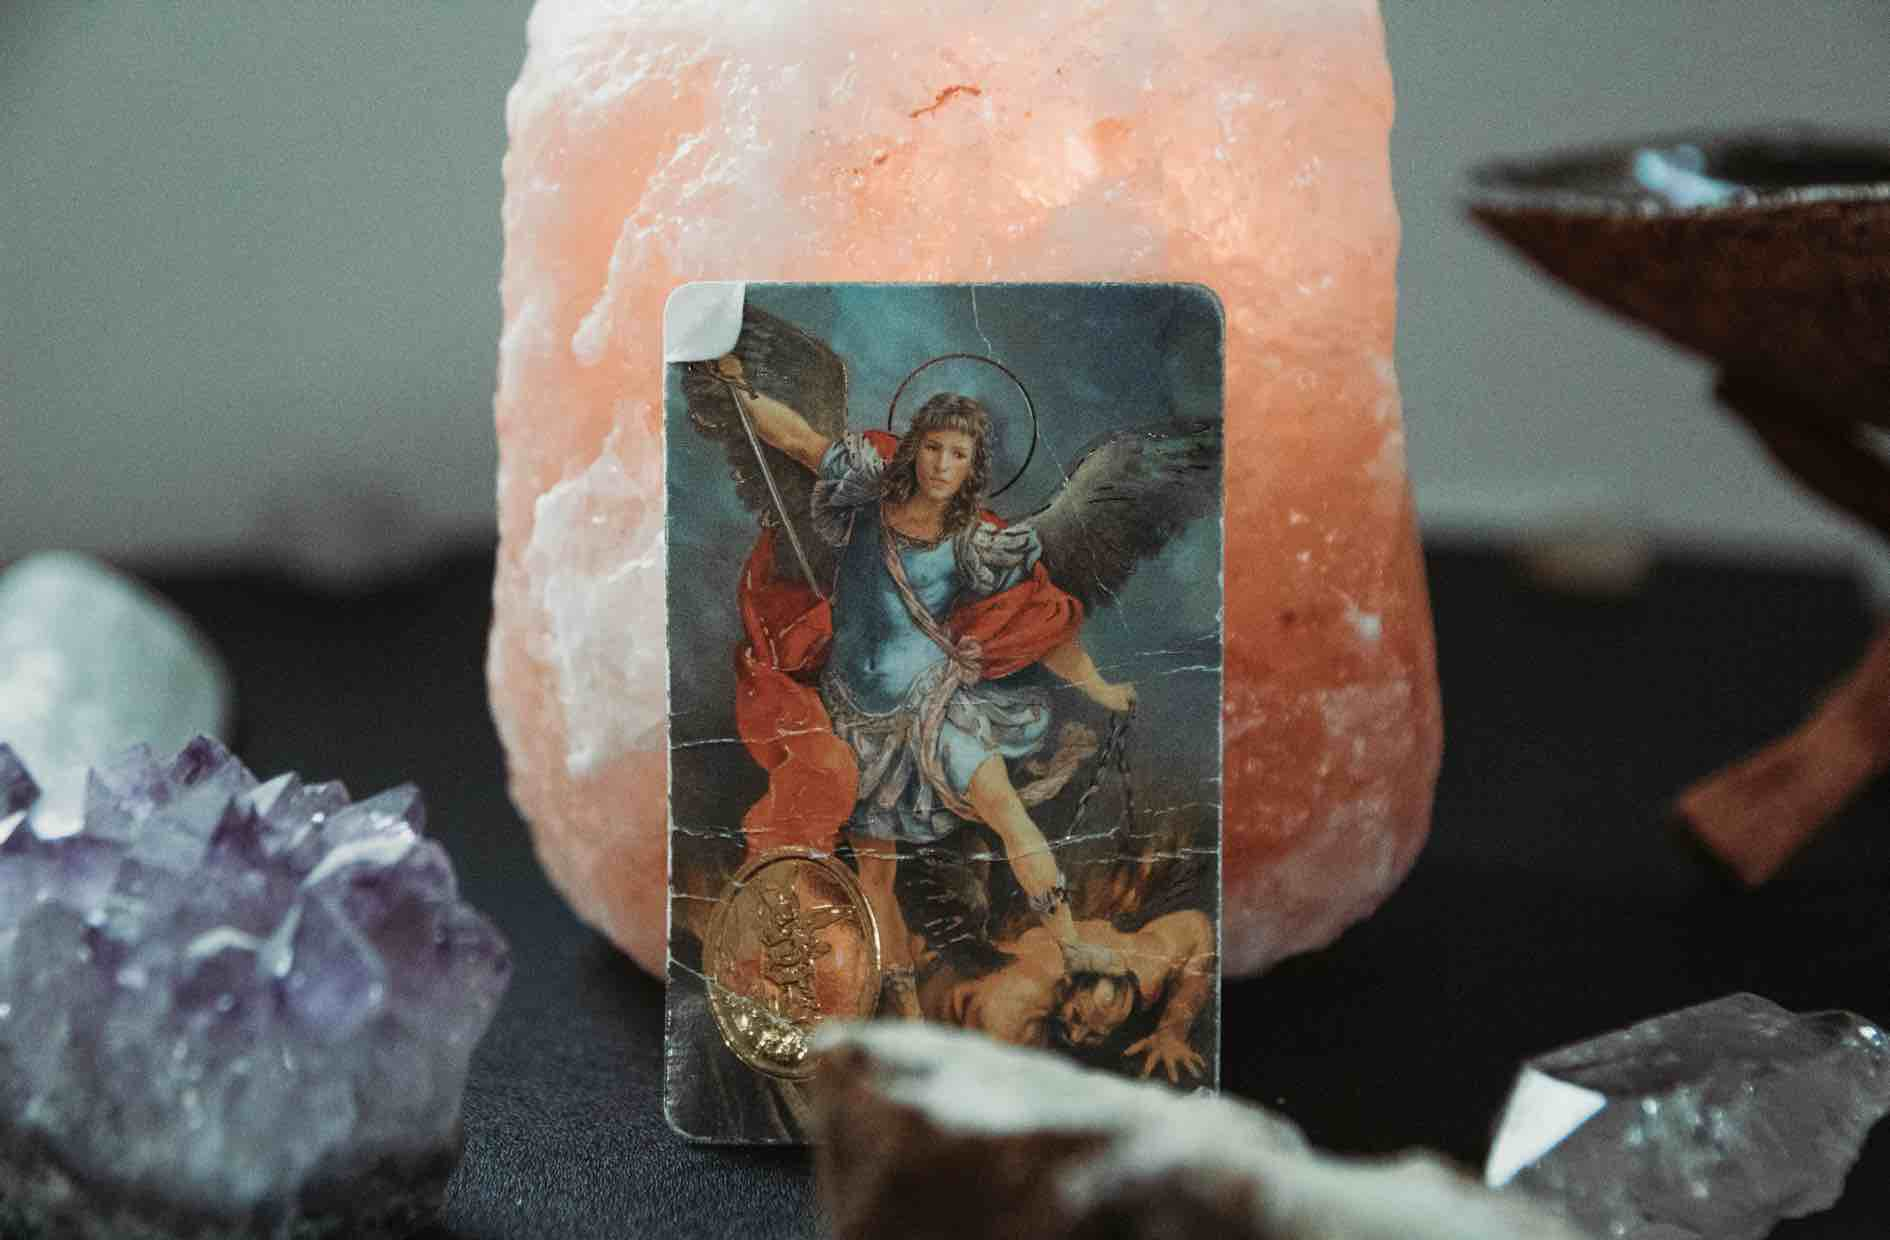 Archangel card resting against crystals